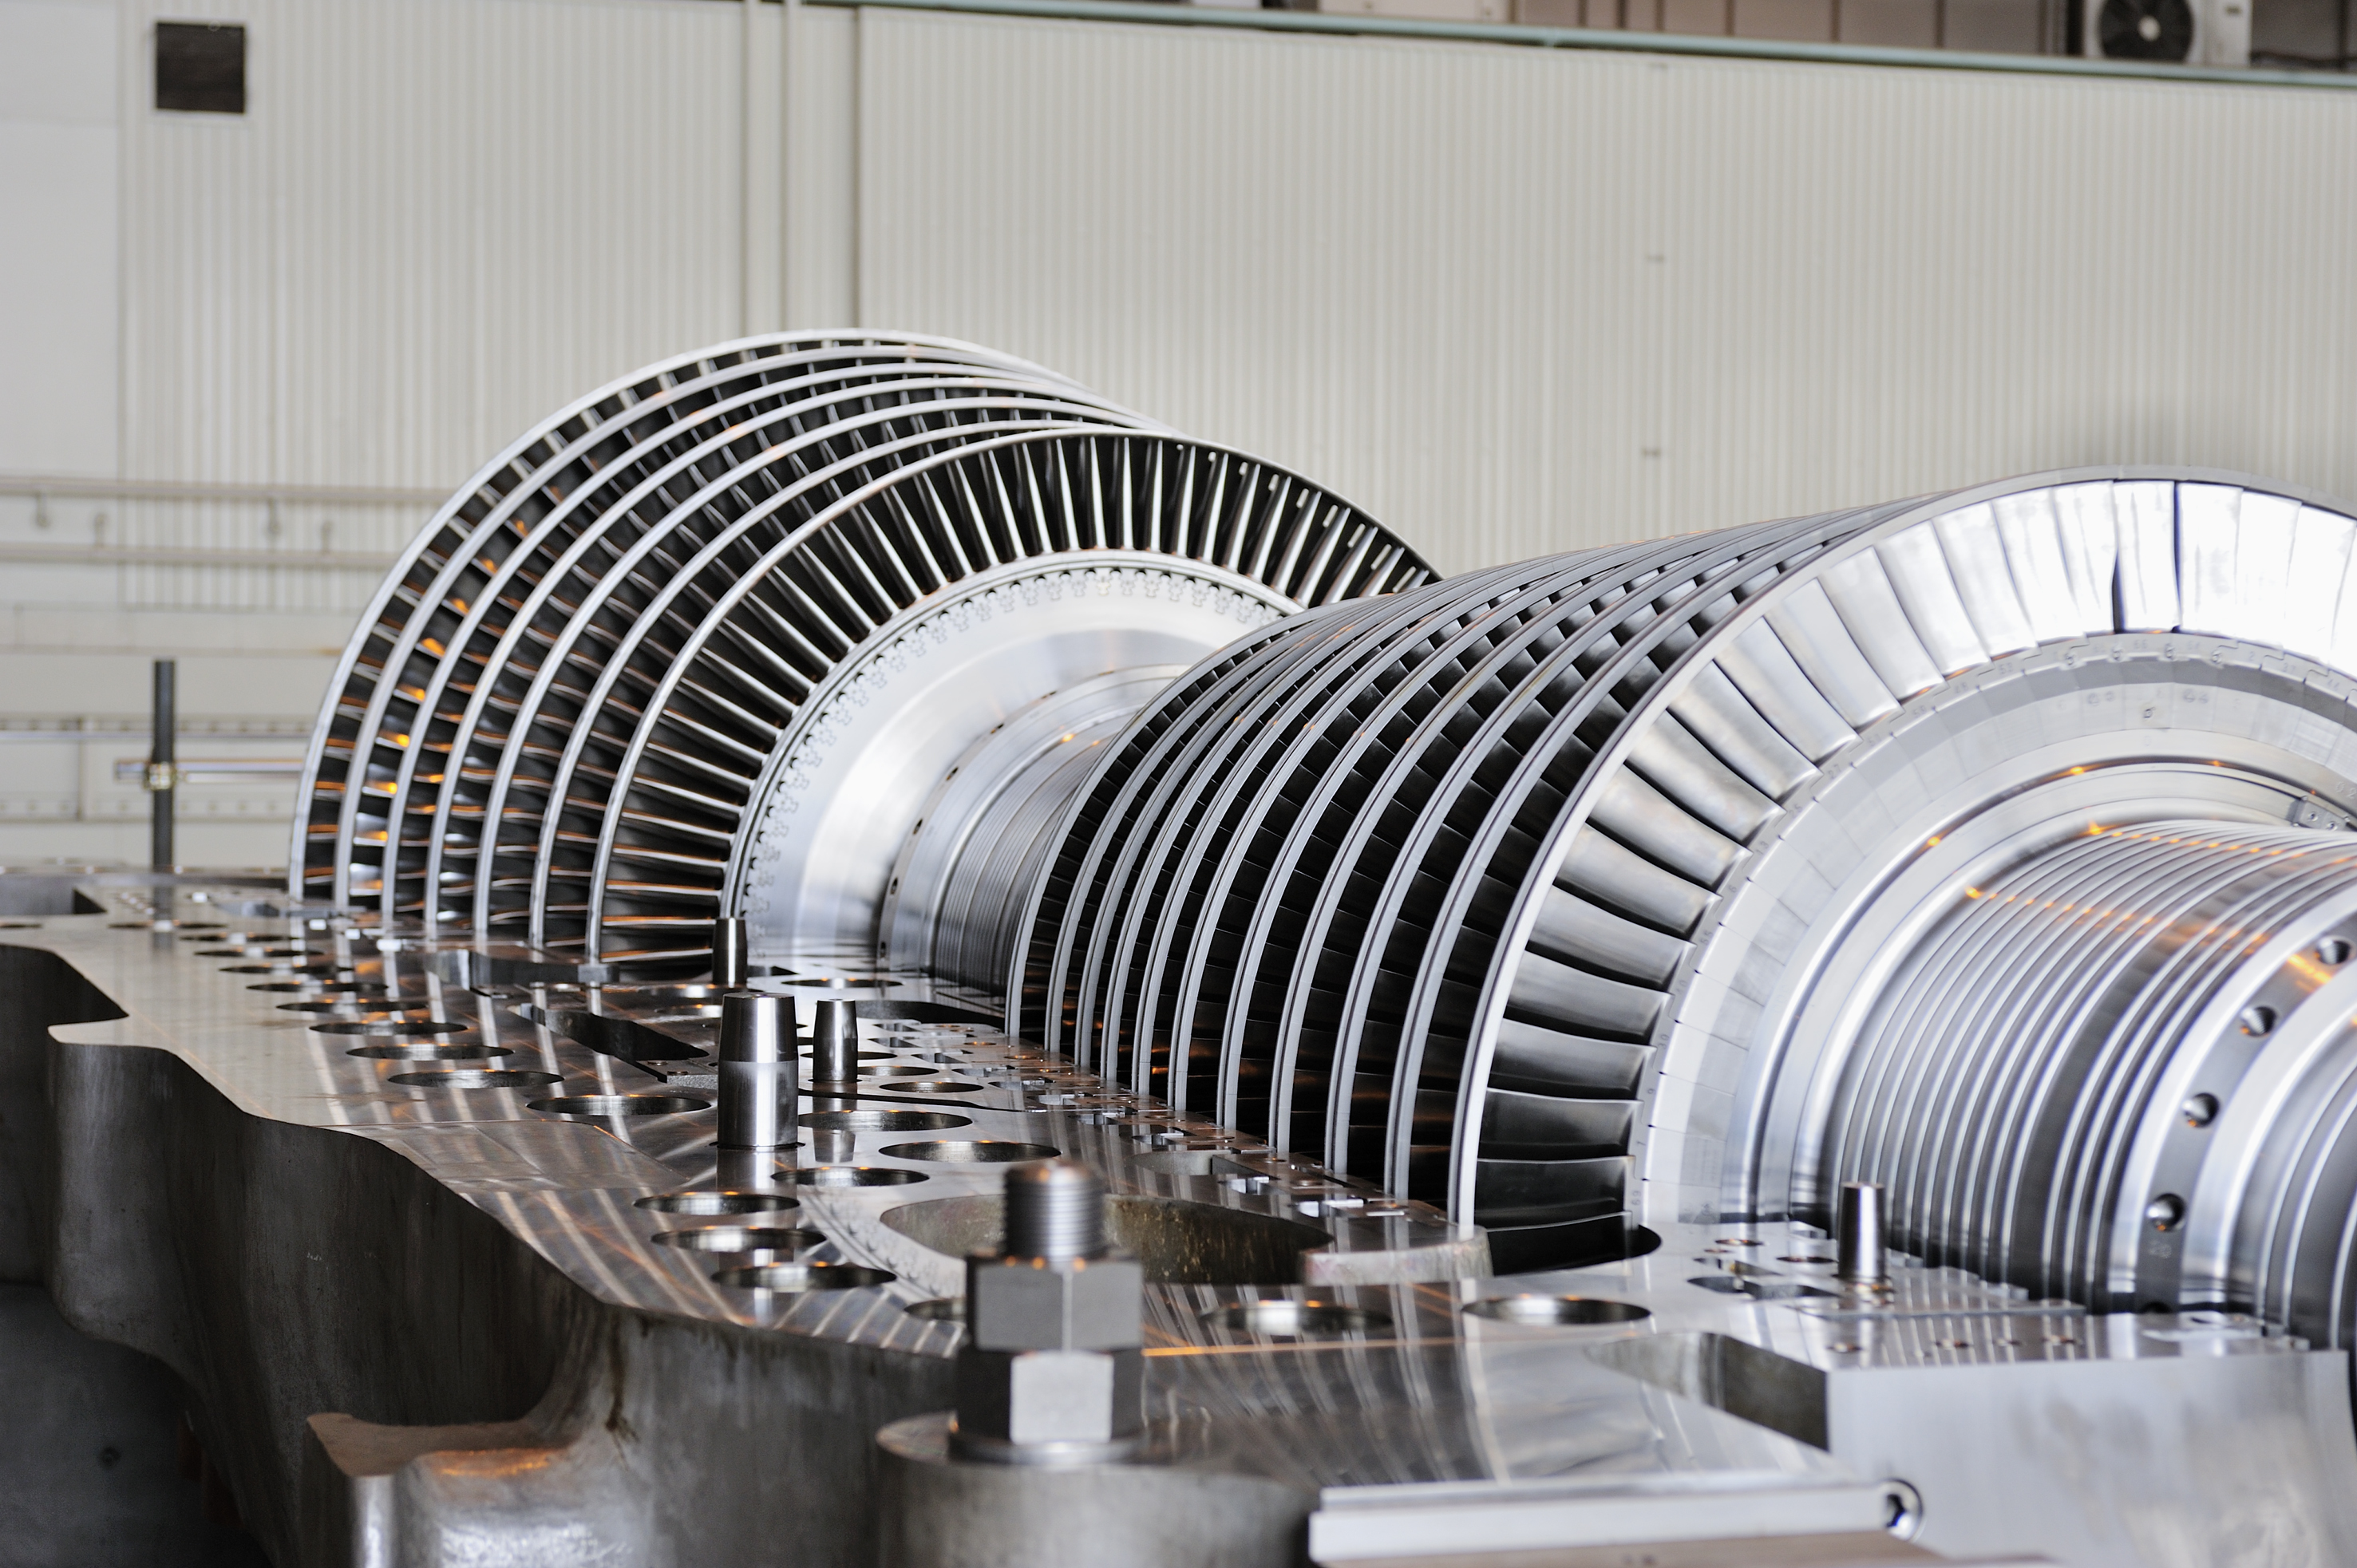 Toshiba Receives Order to Supply Steam Turbine and Generator for Allen  Combined Cycle Power Plant in the USA   Business Wire